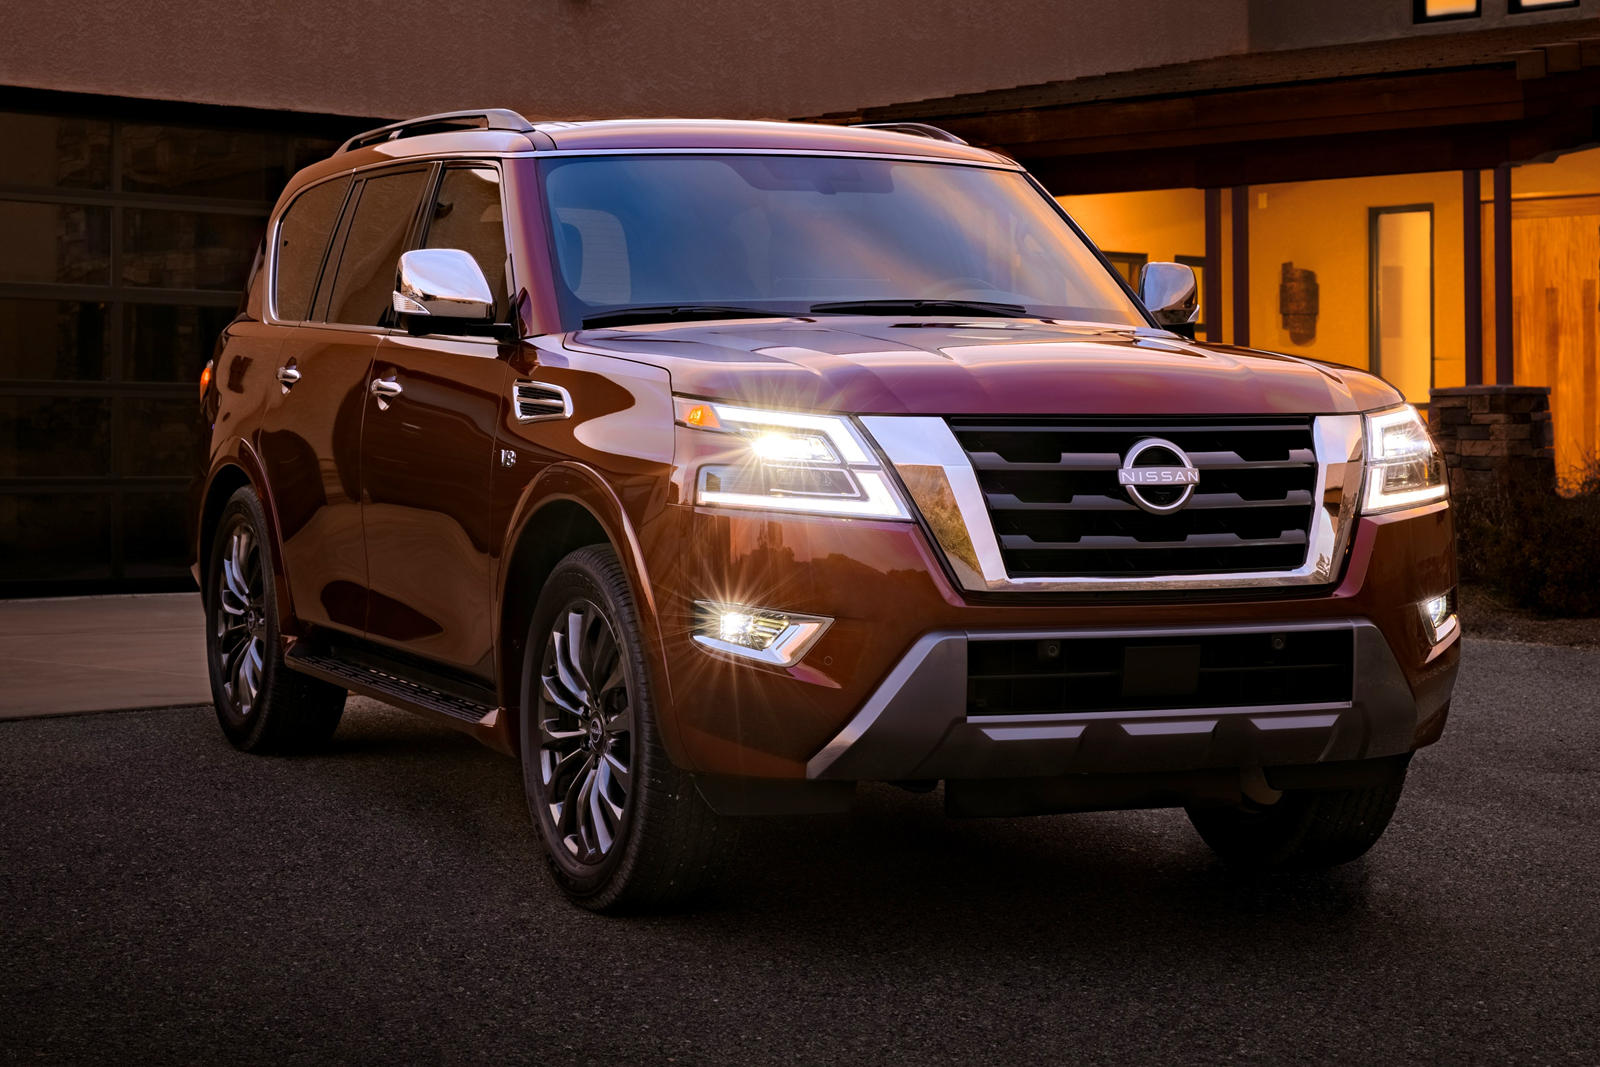 2021 nissan armada sweeps in with more power and sharper